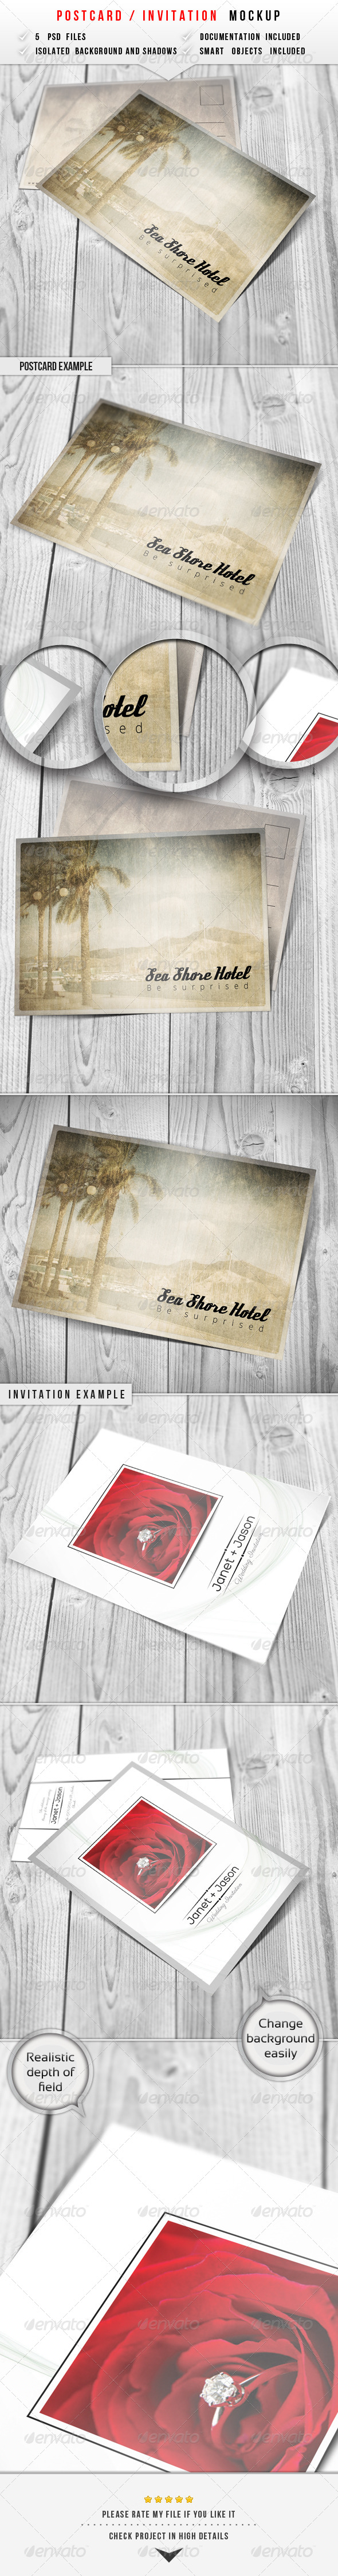 GraphicRiver Postcard & Invitation Mockup 6249130